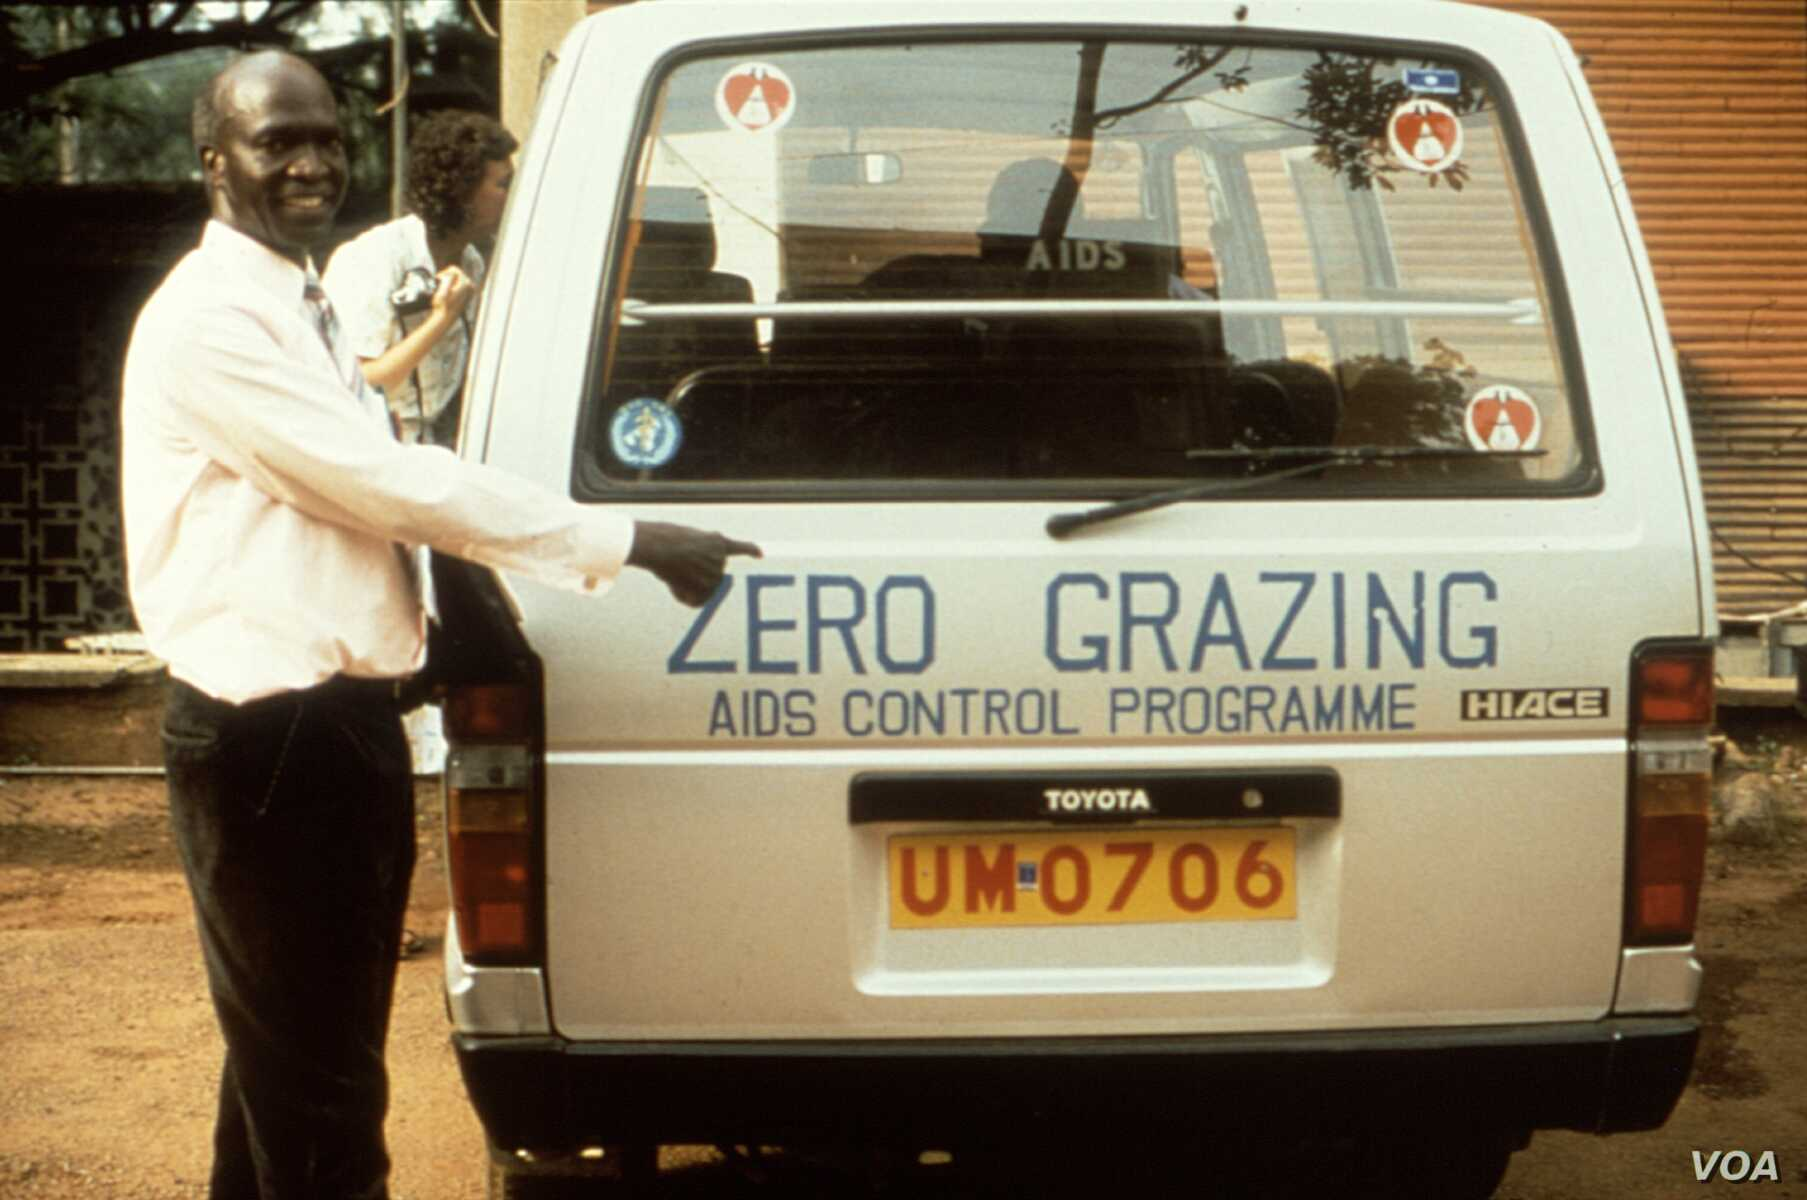 Van used in Uganda's AIDS prevention campaign of the 1980's (Photo: by Daniel Halperin)